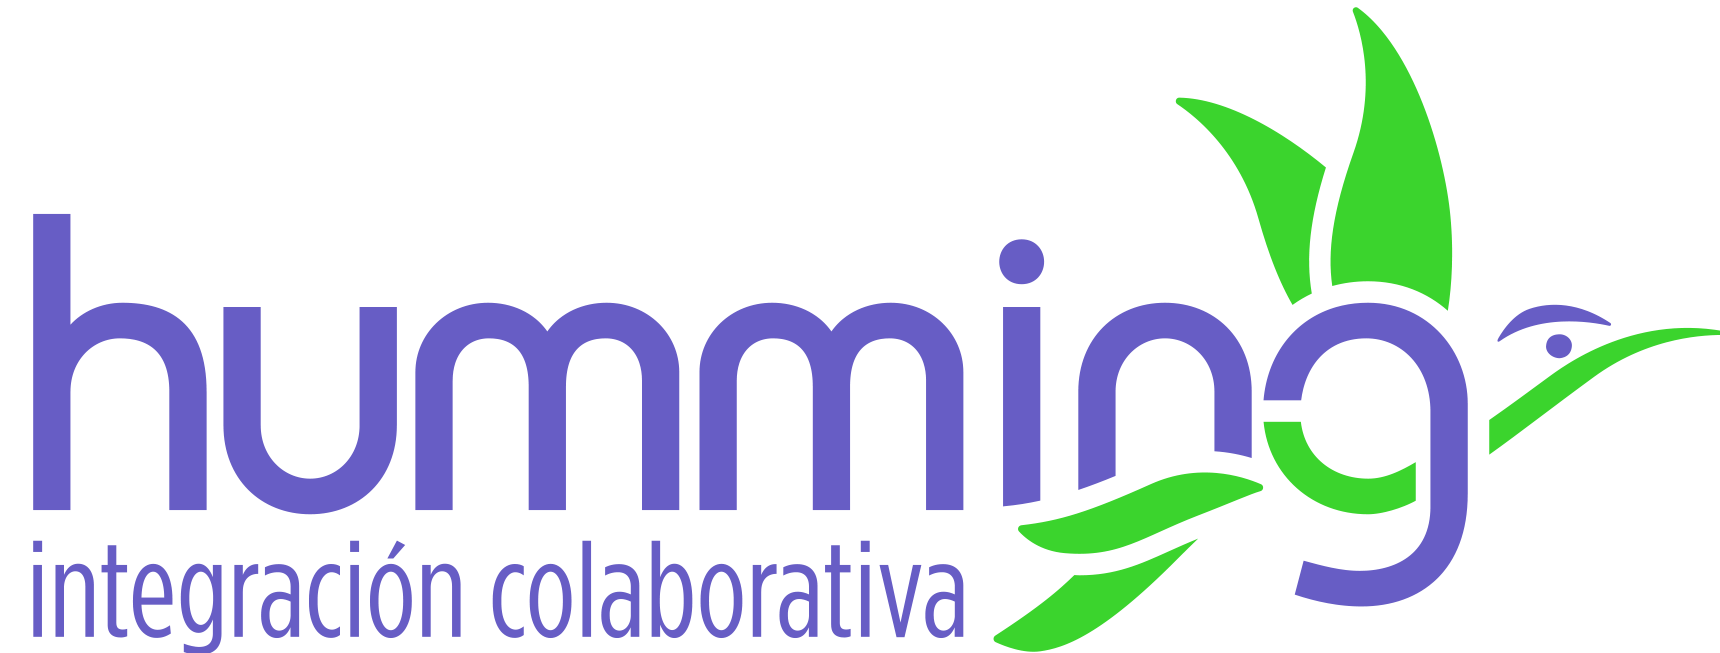 Humminggroup